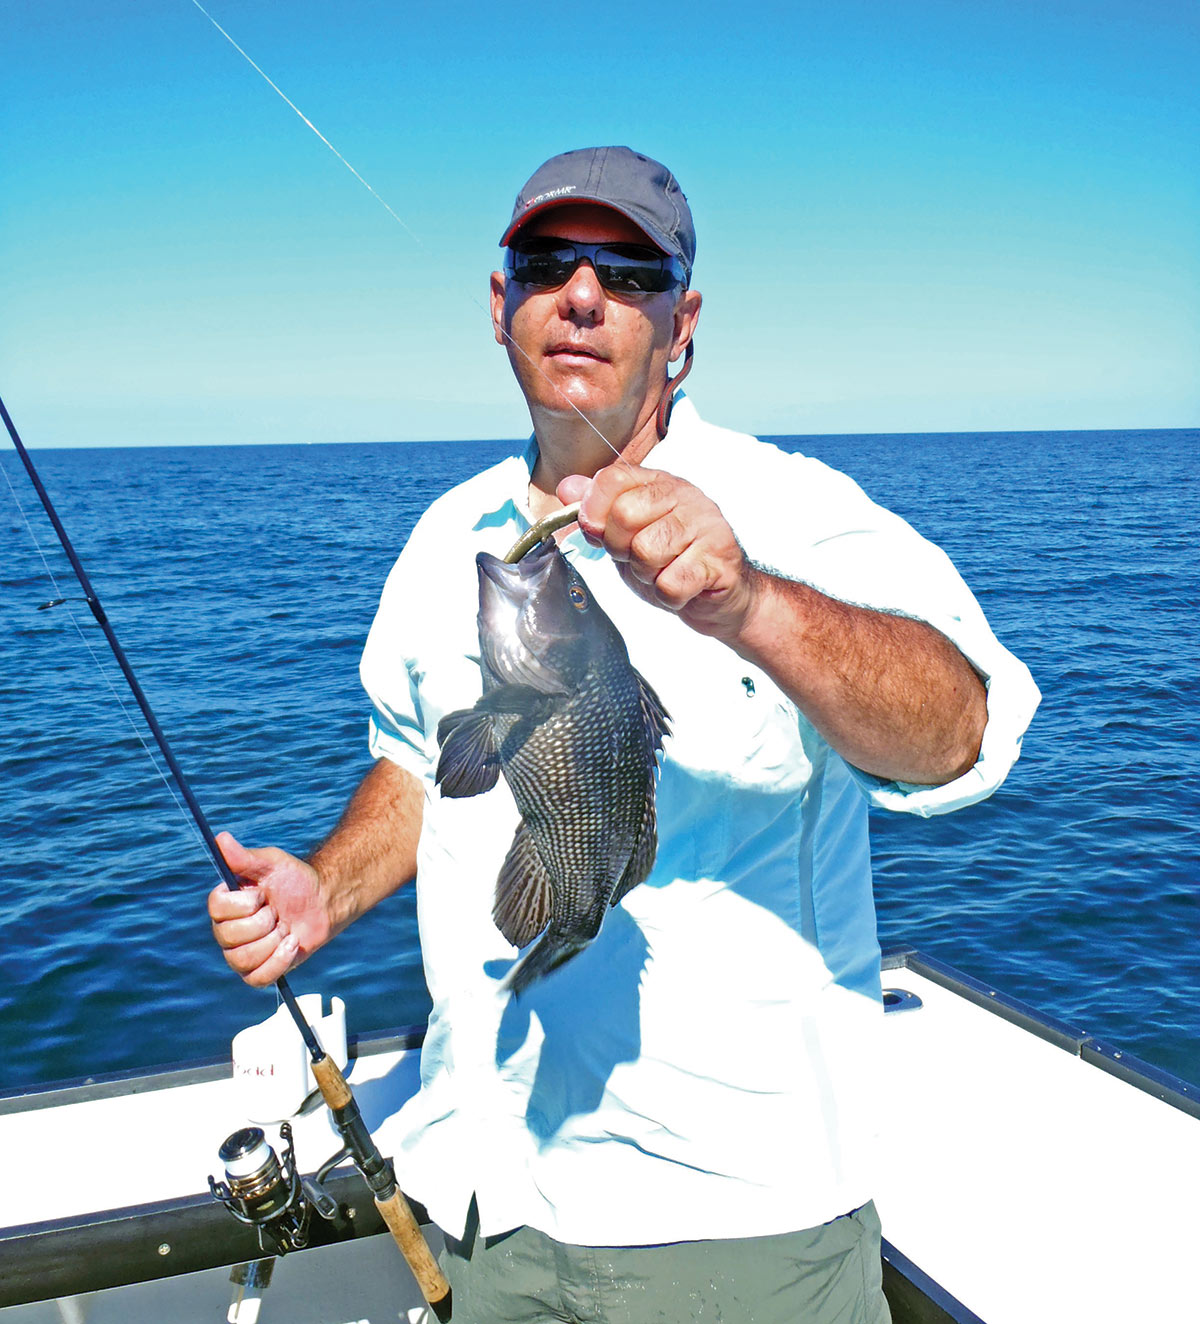 man in white shirt holding a fishing rod and black fish in a boat